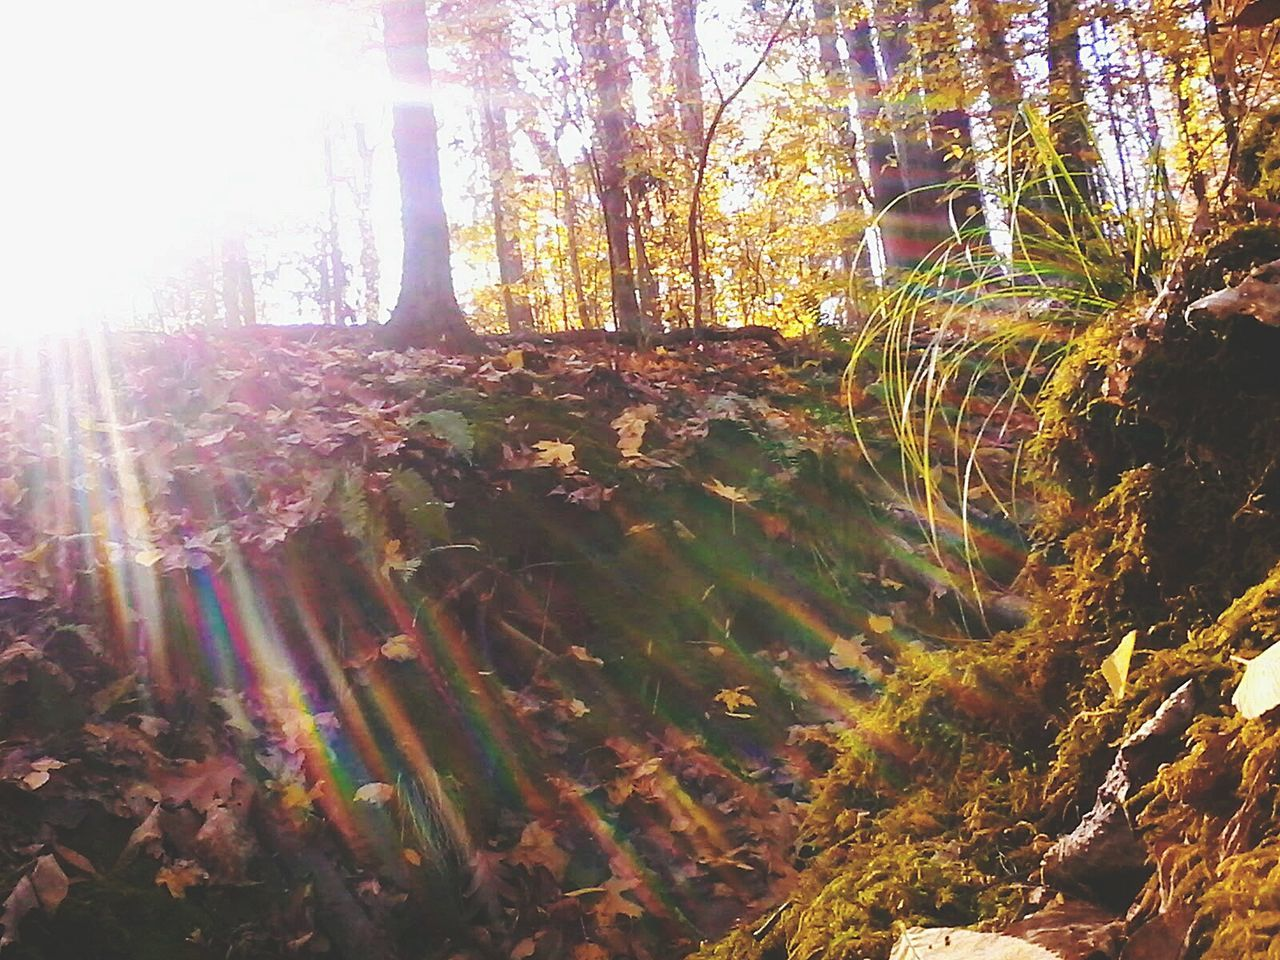 tree, nature, tranquility, forest, tranquil scene, beauty in nature, lens flare, sunbeam, growth, no people, sunlight, day, scenics, outdoors, tree trunk, autumn, landscape, sky